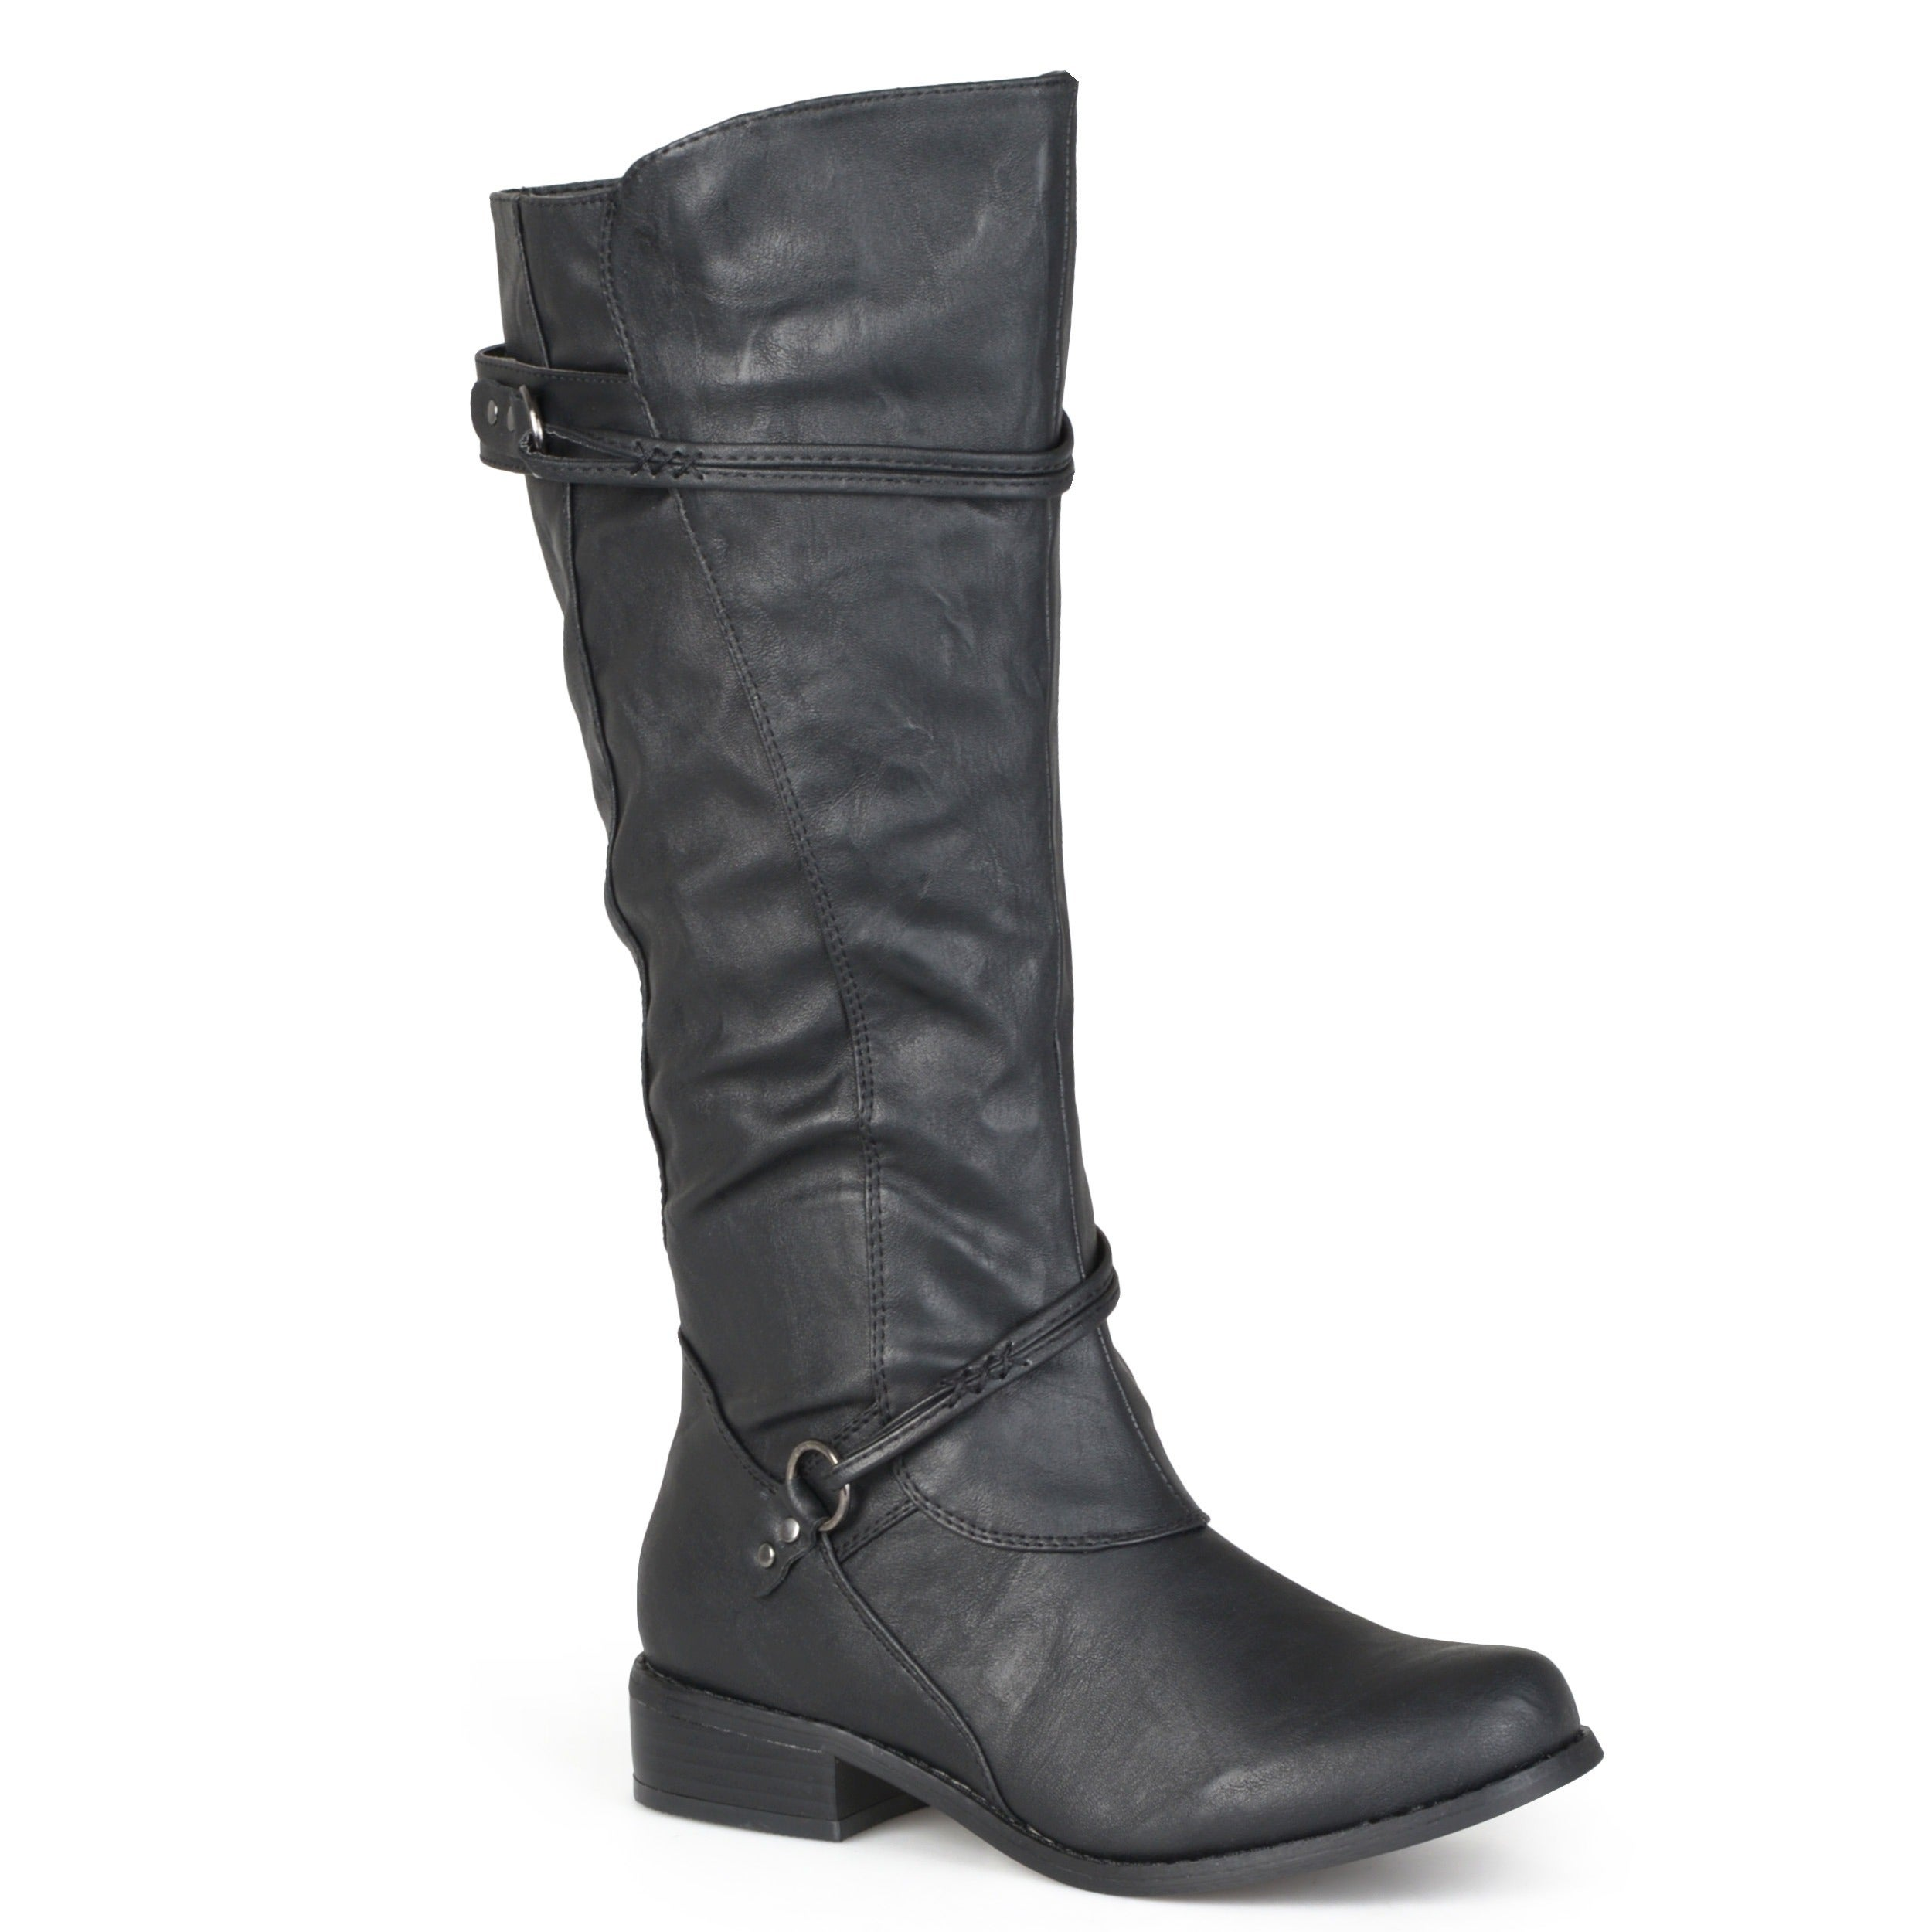 5fb382ab7d Shop Journee Collection Women's 'Harley' Regular and Wide-calf Ankle-strap  Buckle Knee-high Riding Boot - Free Shipping Today - Overstock - 5162850